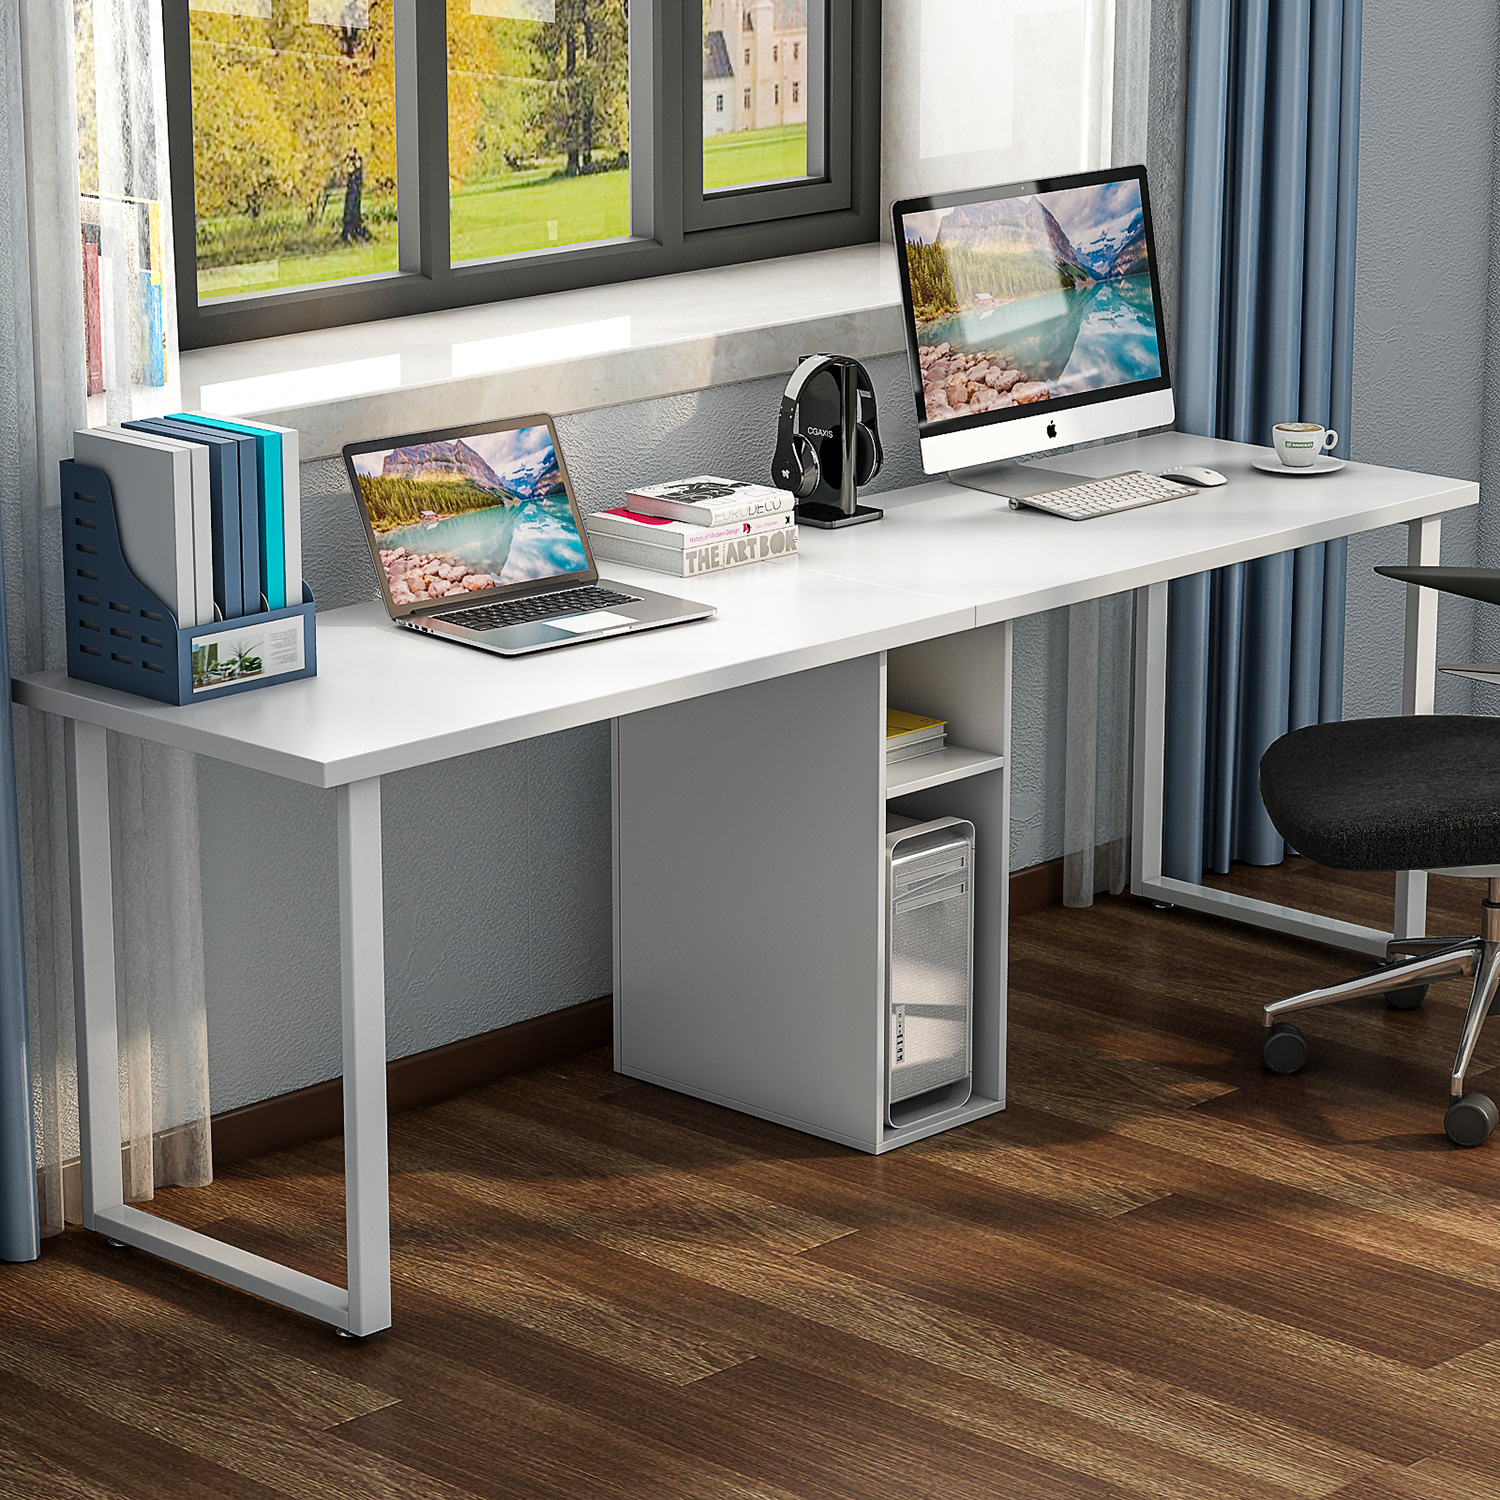 "Tribesigns 78"" Extra Large Double Workstation Computer Desk for Two Person, Simple Modern Style Office Desk with Storage and Cabinet Works as Study Table or Writing Desk, White"